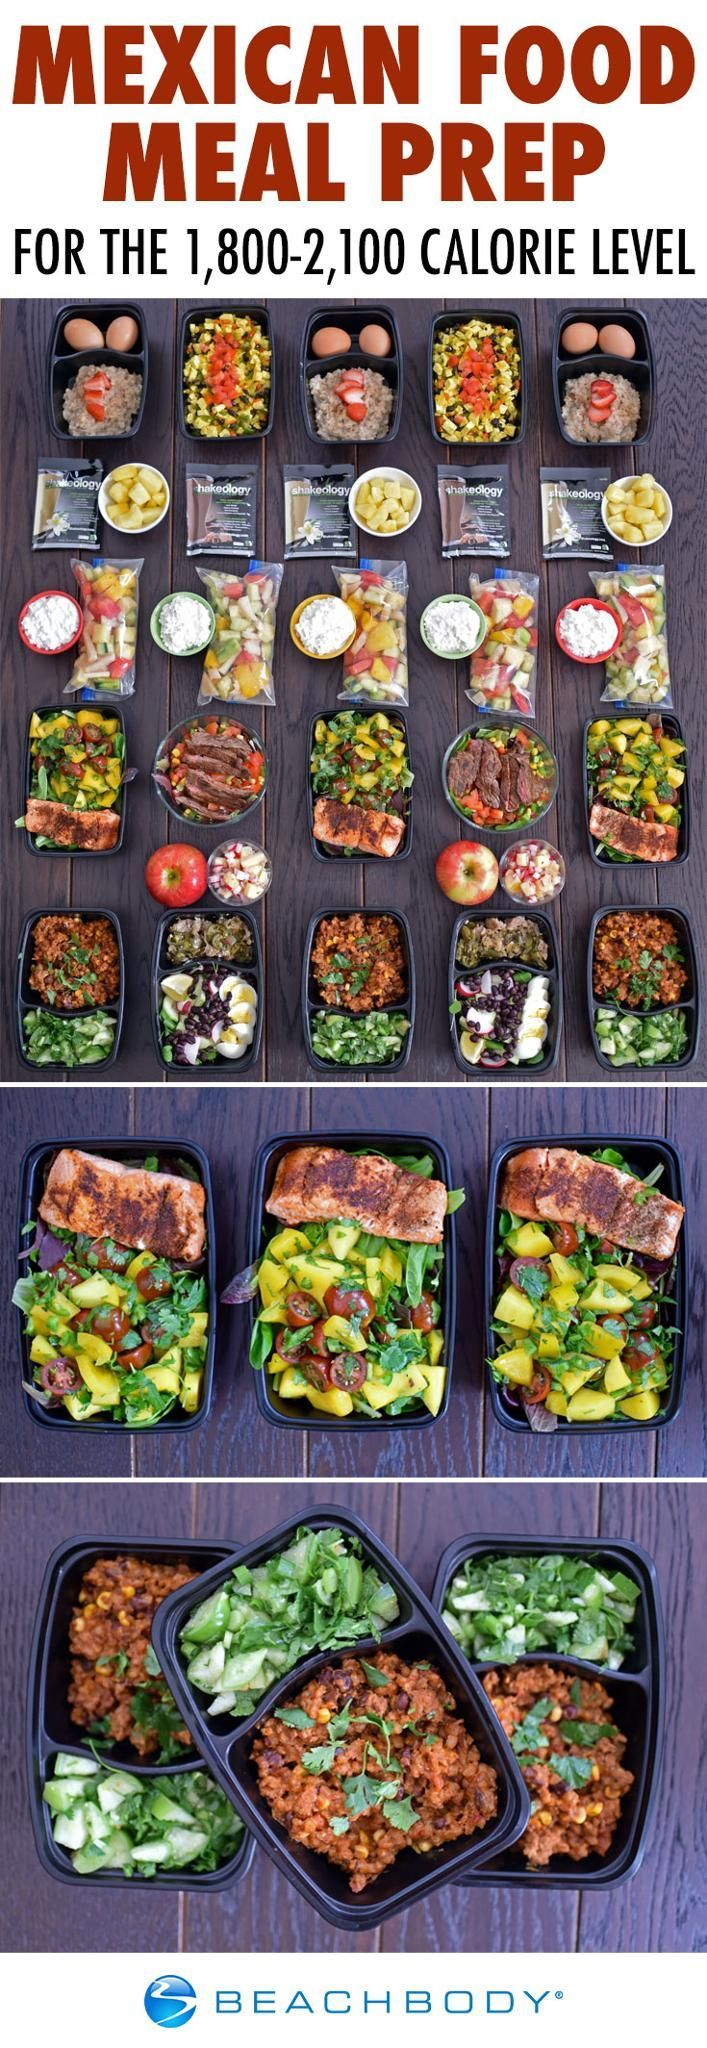 What if you could eat Mexican food at every single meal and still stick to your nutrition plan? This meal prep plan let's you do just that! With five days of Mexican-themed dishes, it's one of our delicious most meal plans yet! // healthy eating // cinco de mayo // Beachbody // http://BeachbodyBlog.com